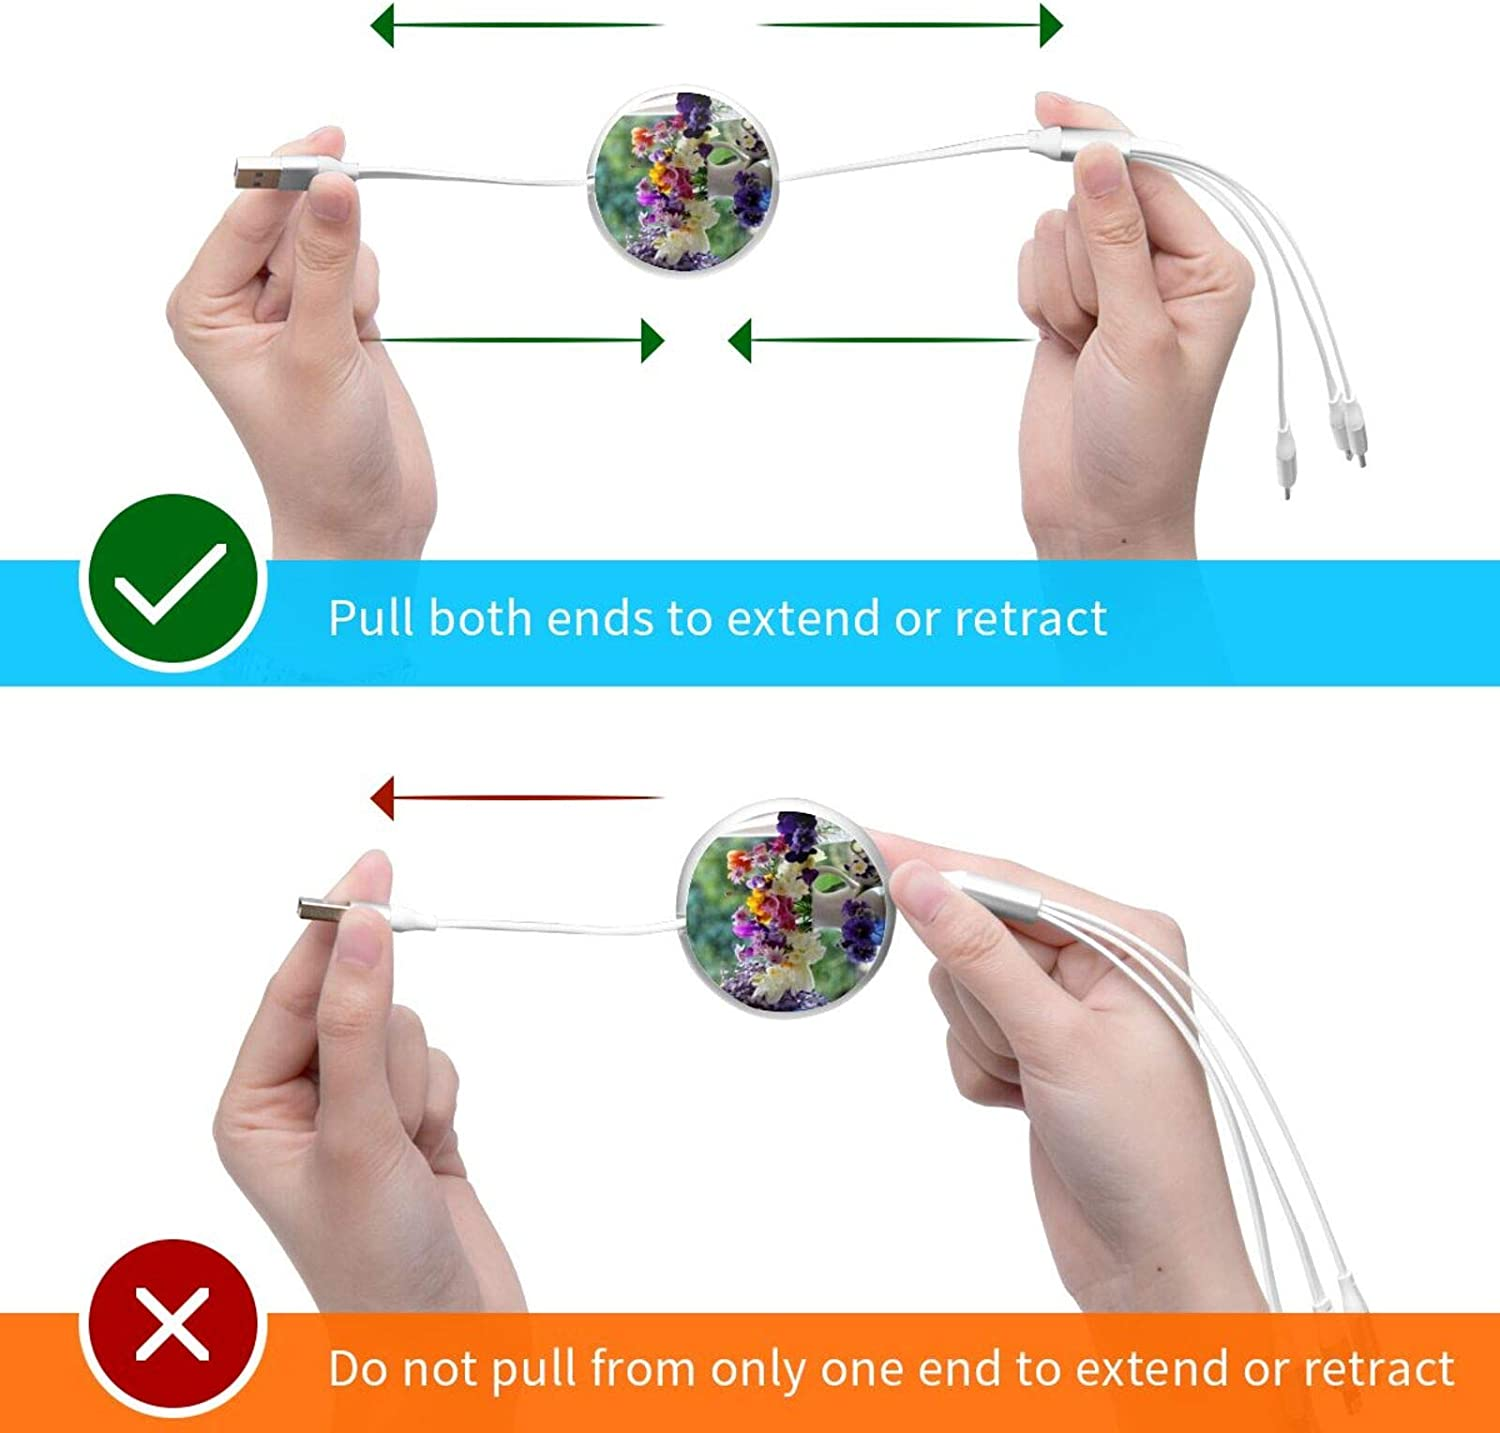 3-in-1 Retractable USB Charging Cable Flower Plants Fast Charging Universal Multi Charger Cord Compatible with Cell Phones Tablets Universal Use